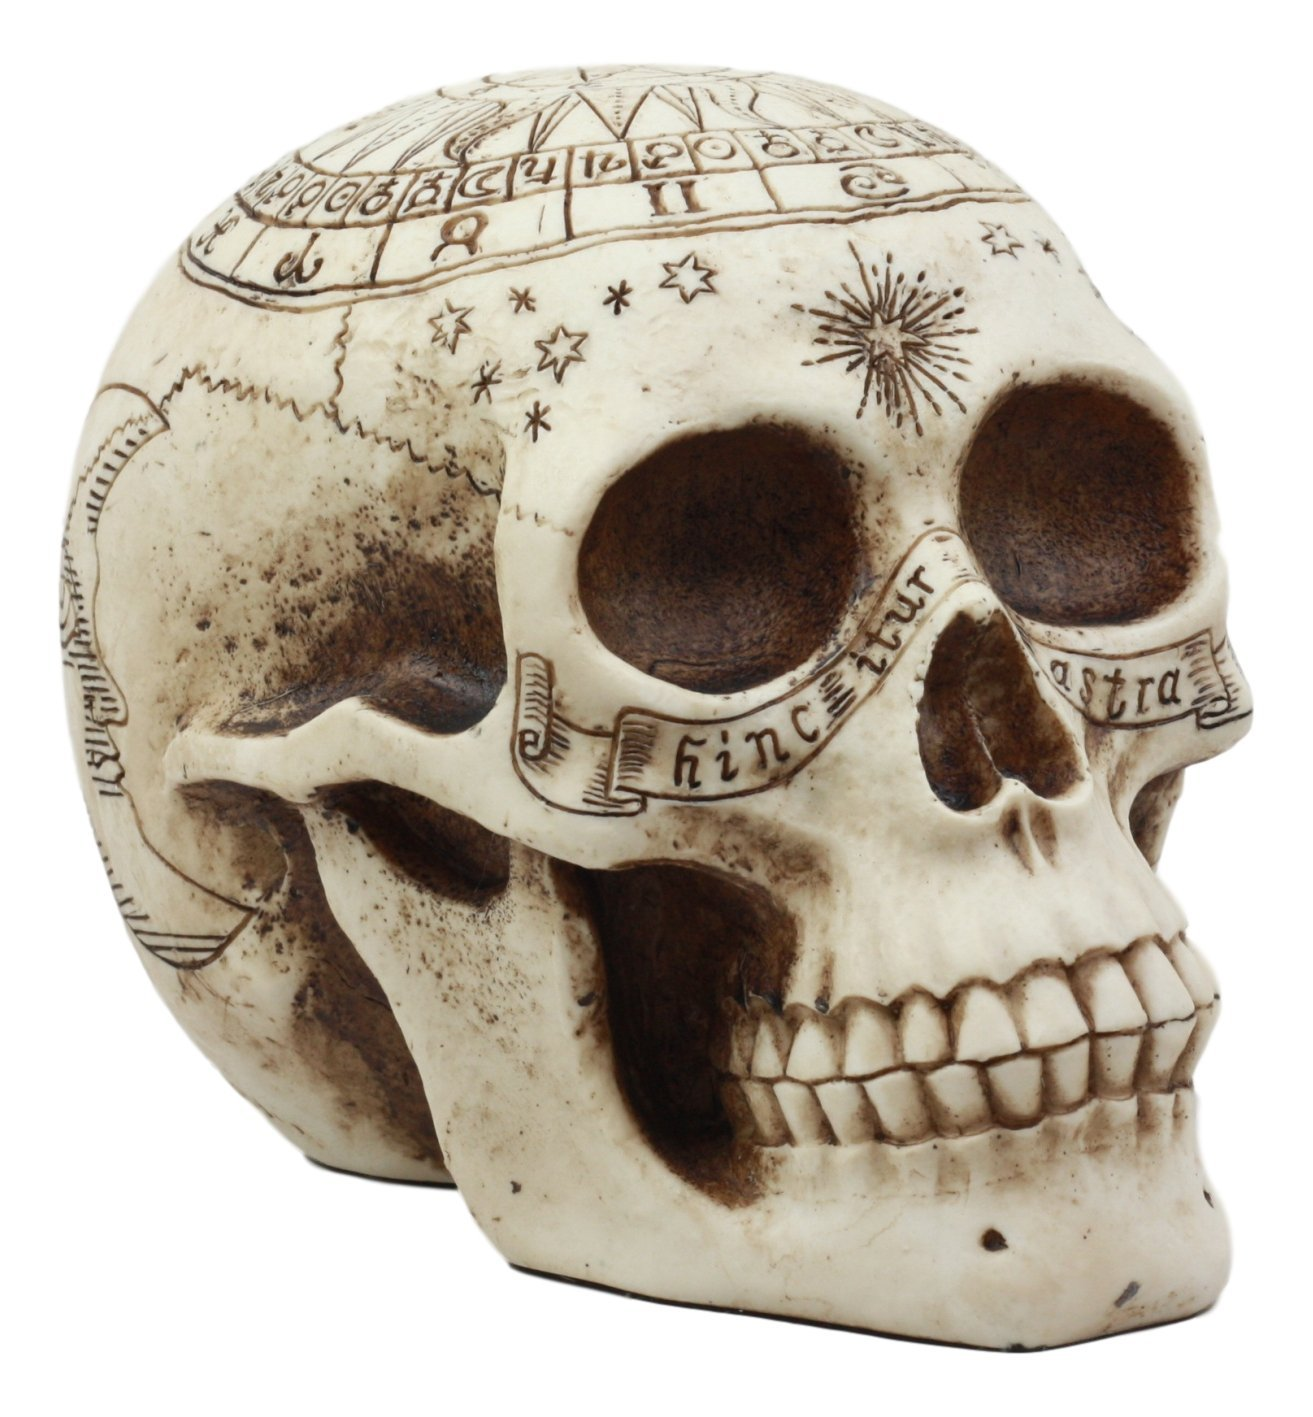 Ebros Gift Solar Astrology Celestial Skull Statue Ancient Prophecy Cartography Relic Map Skull Cranium Decorative Figurine Ossuary Macabre Skulls and Skeletons Decor - SonsofOdin Co Goth Viking Biker Jewellry